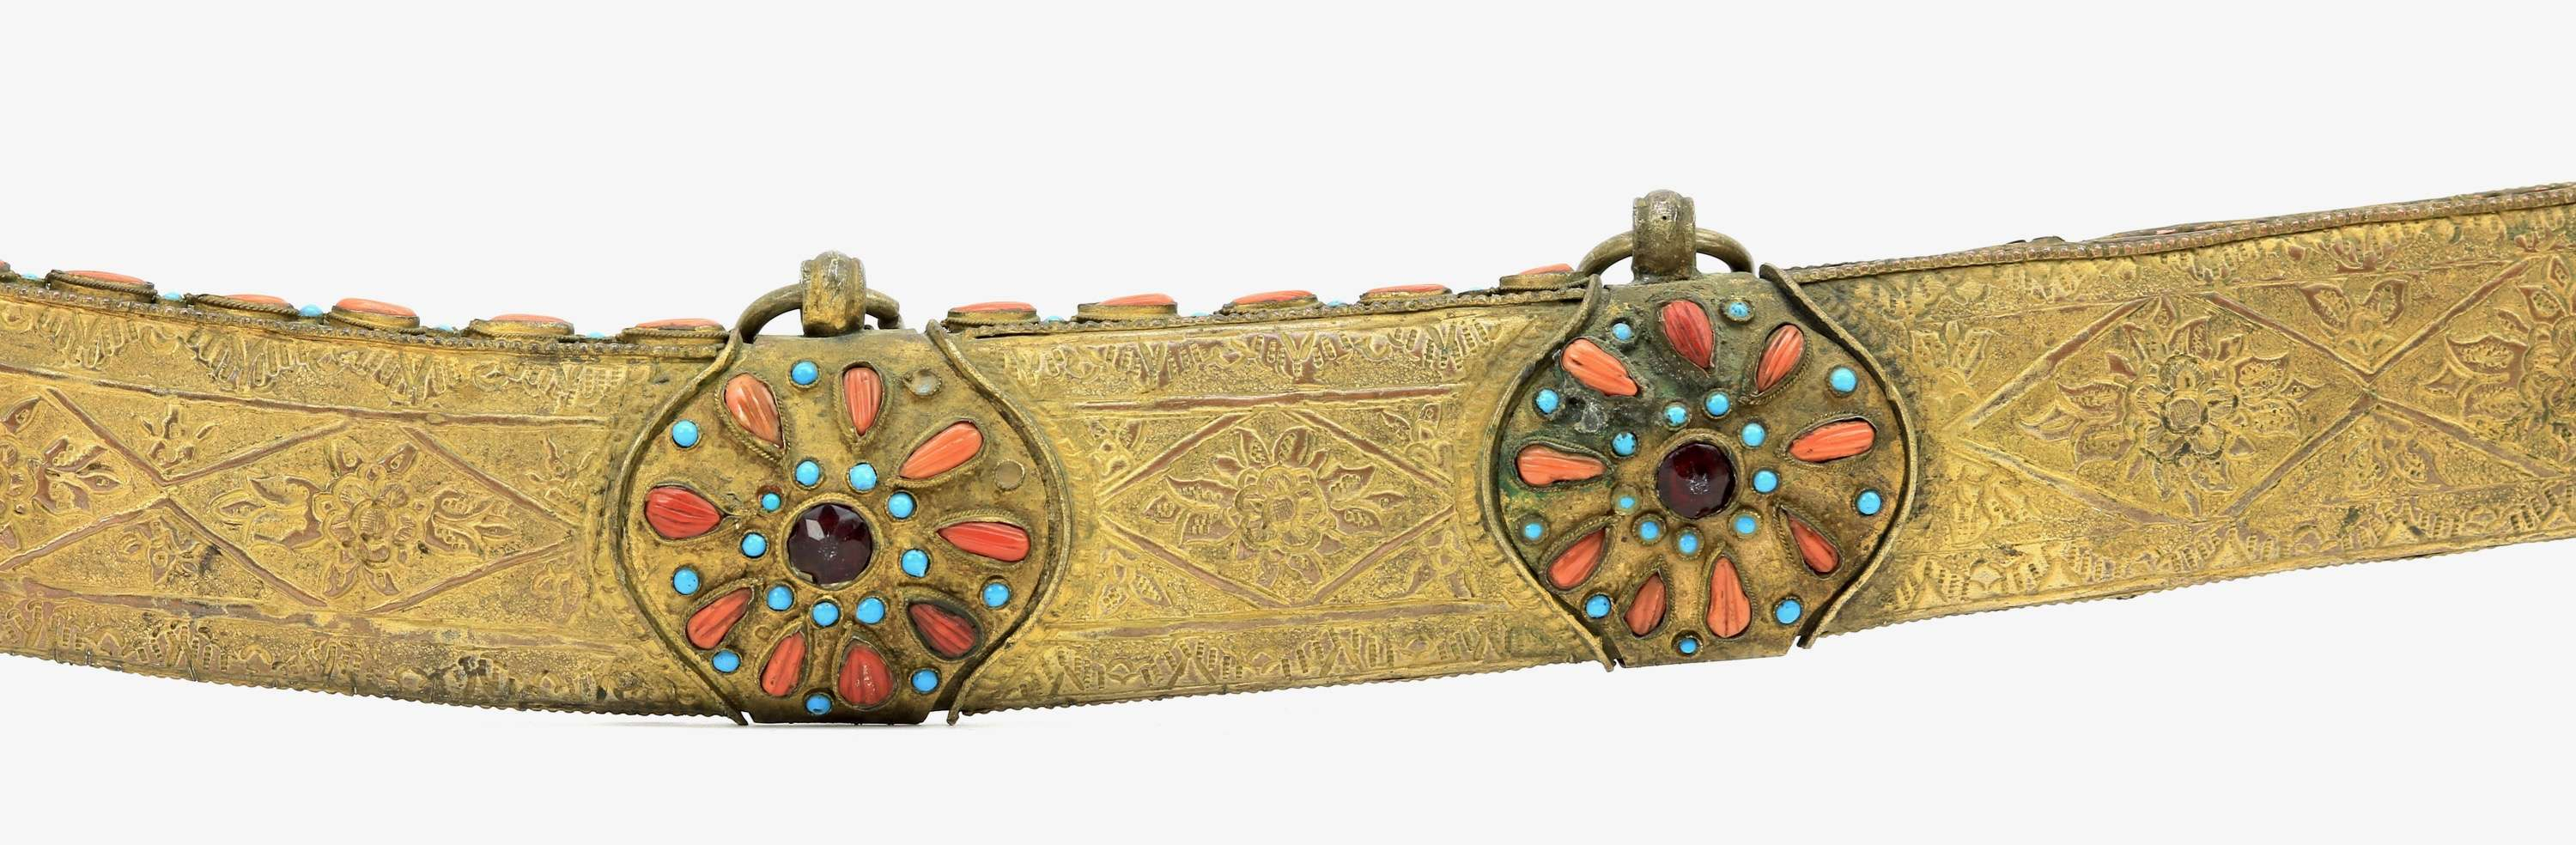 Ottoman pala beset with coral and turquoises